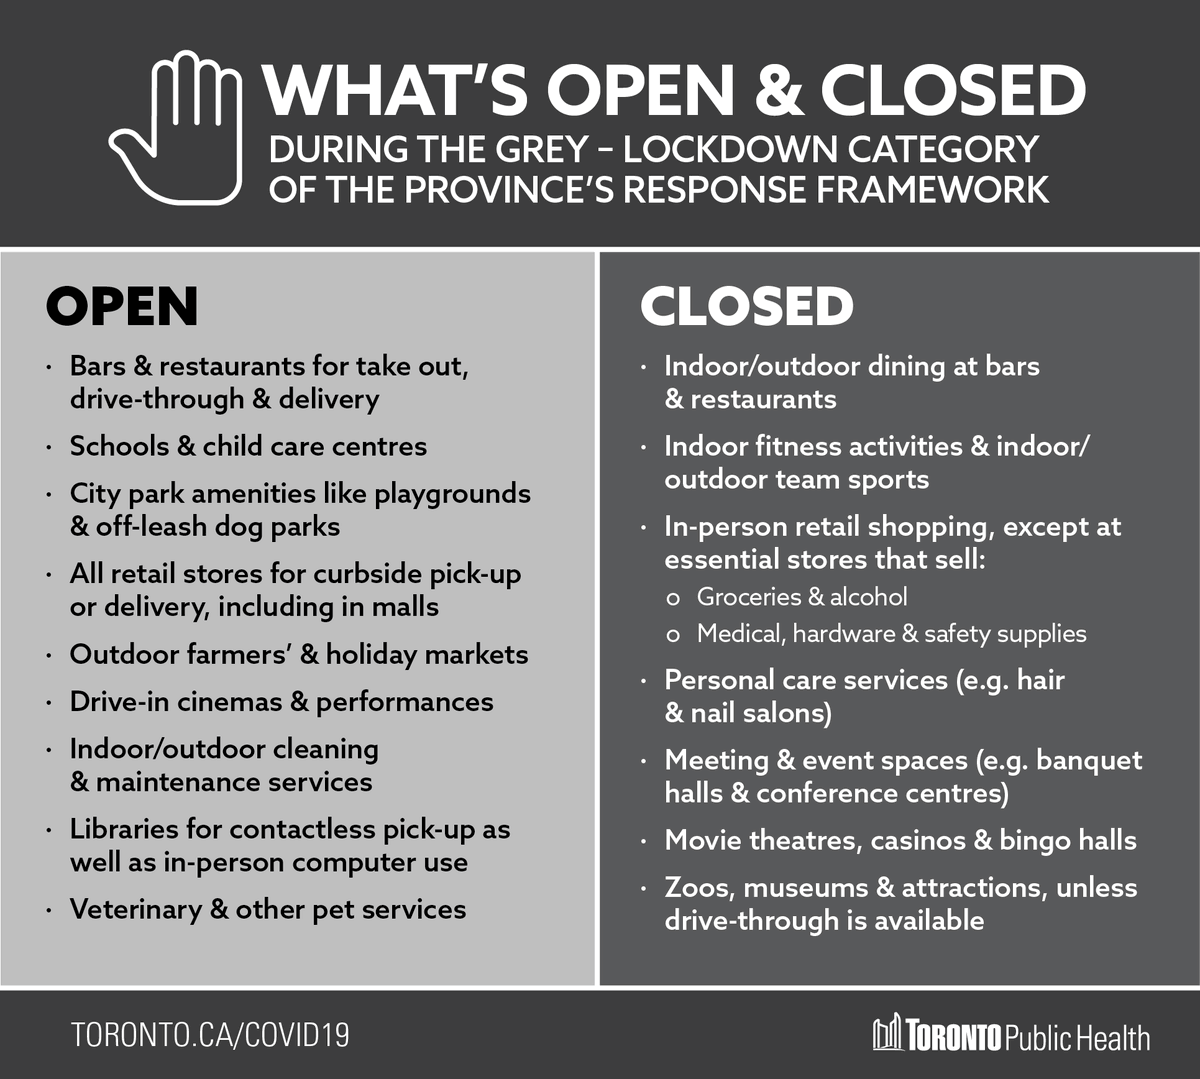 Toronto is now in the Grey - Lockdown category of ON's #COVID19 response framework to interrupt virus spread in our city. Stay home as much as you can & learn more about essential trips: ow.ly/sAo550CvDxD